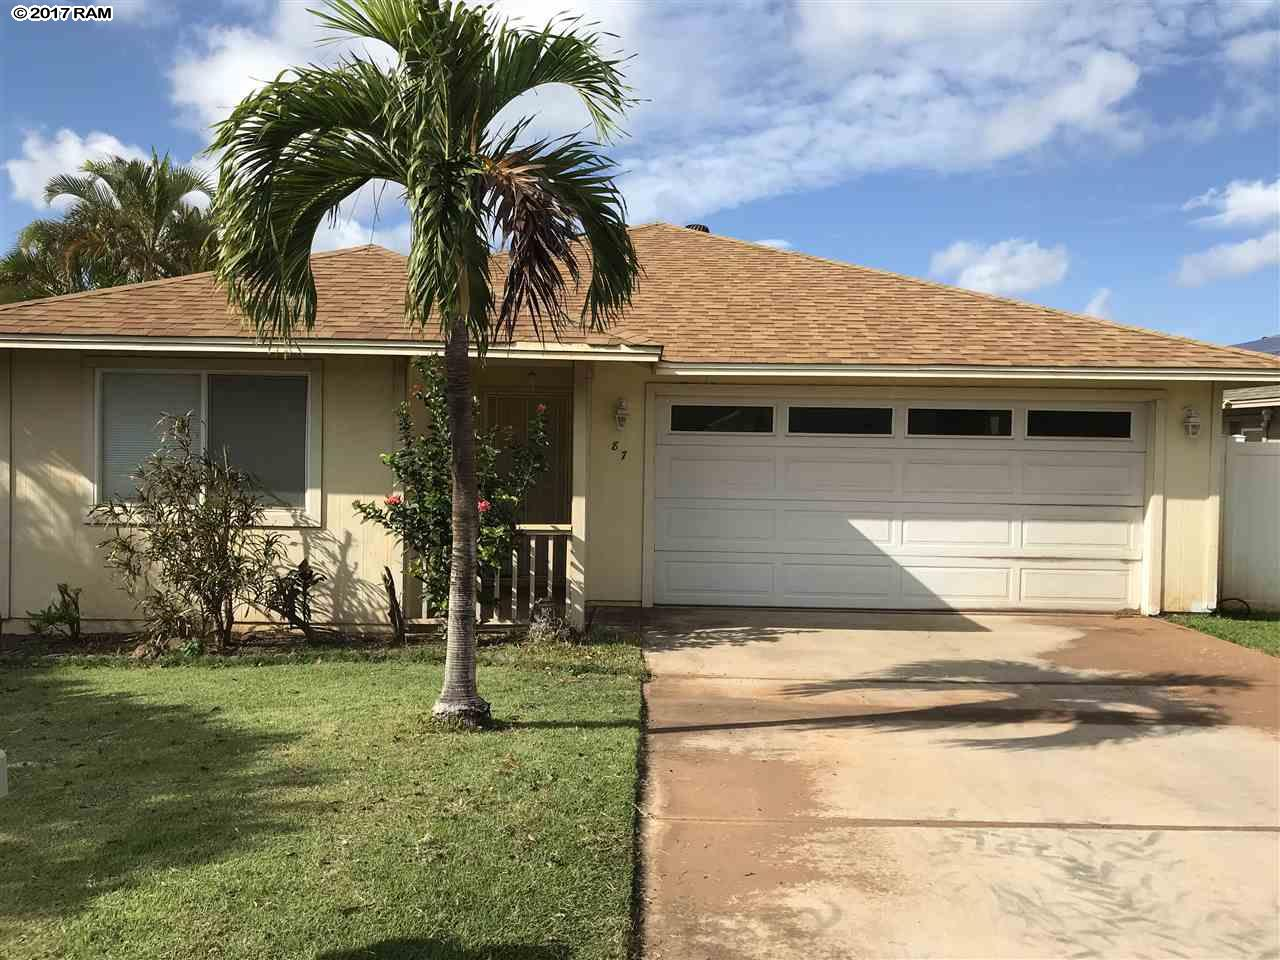 87 Kawailani Cir in Piilani Village - $590,000 - Kihei - MLS ID ...